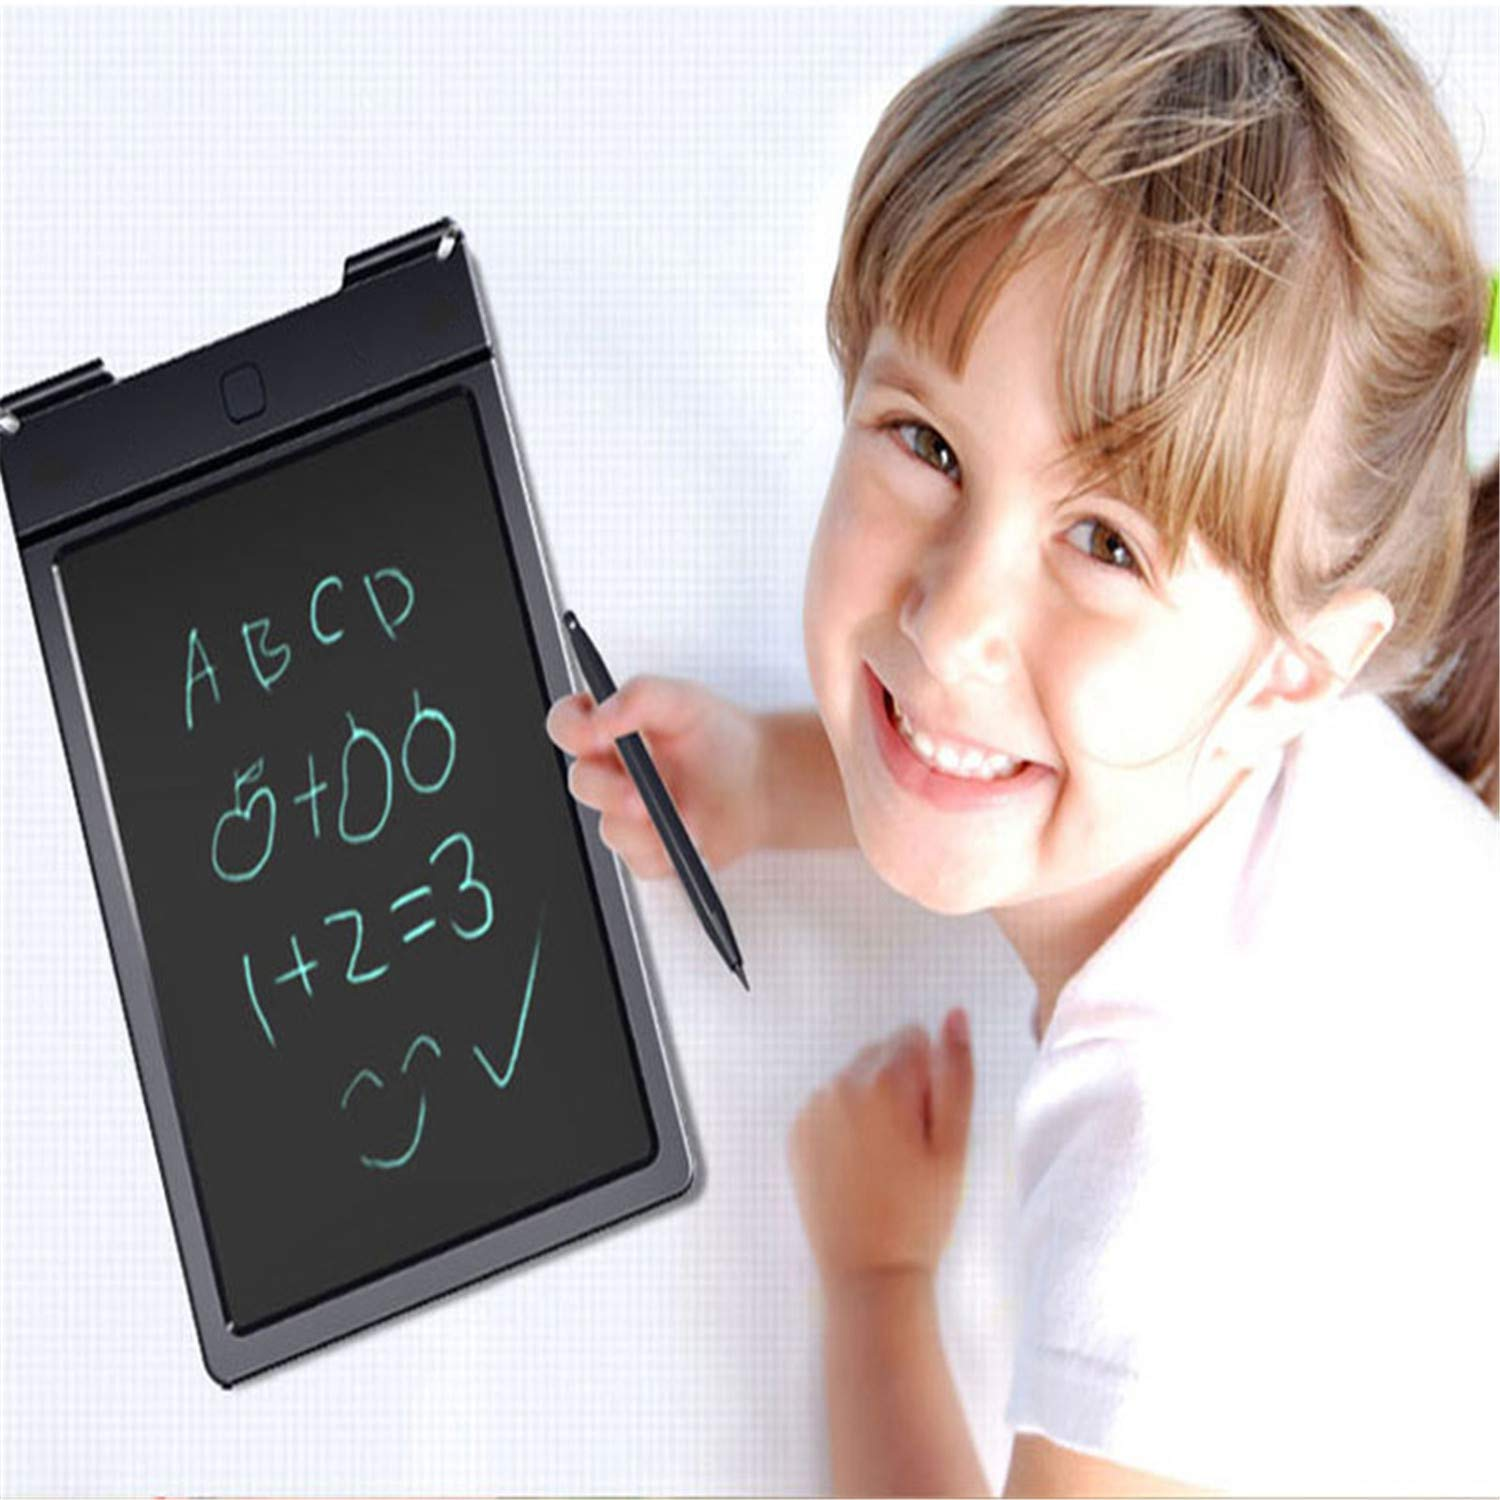 BABIFIS 9 Inch LCD Writing Tablet Digital Drawing Tablet Handwriting Pads Portable Electronic Tablet Board Ultra-Thin Board